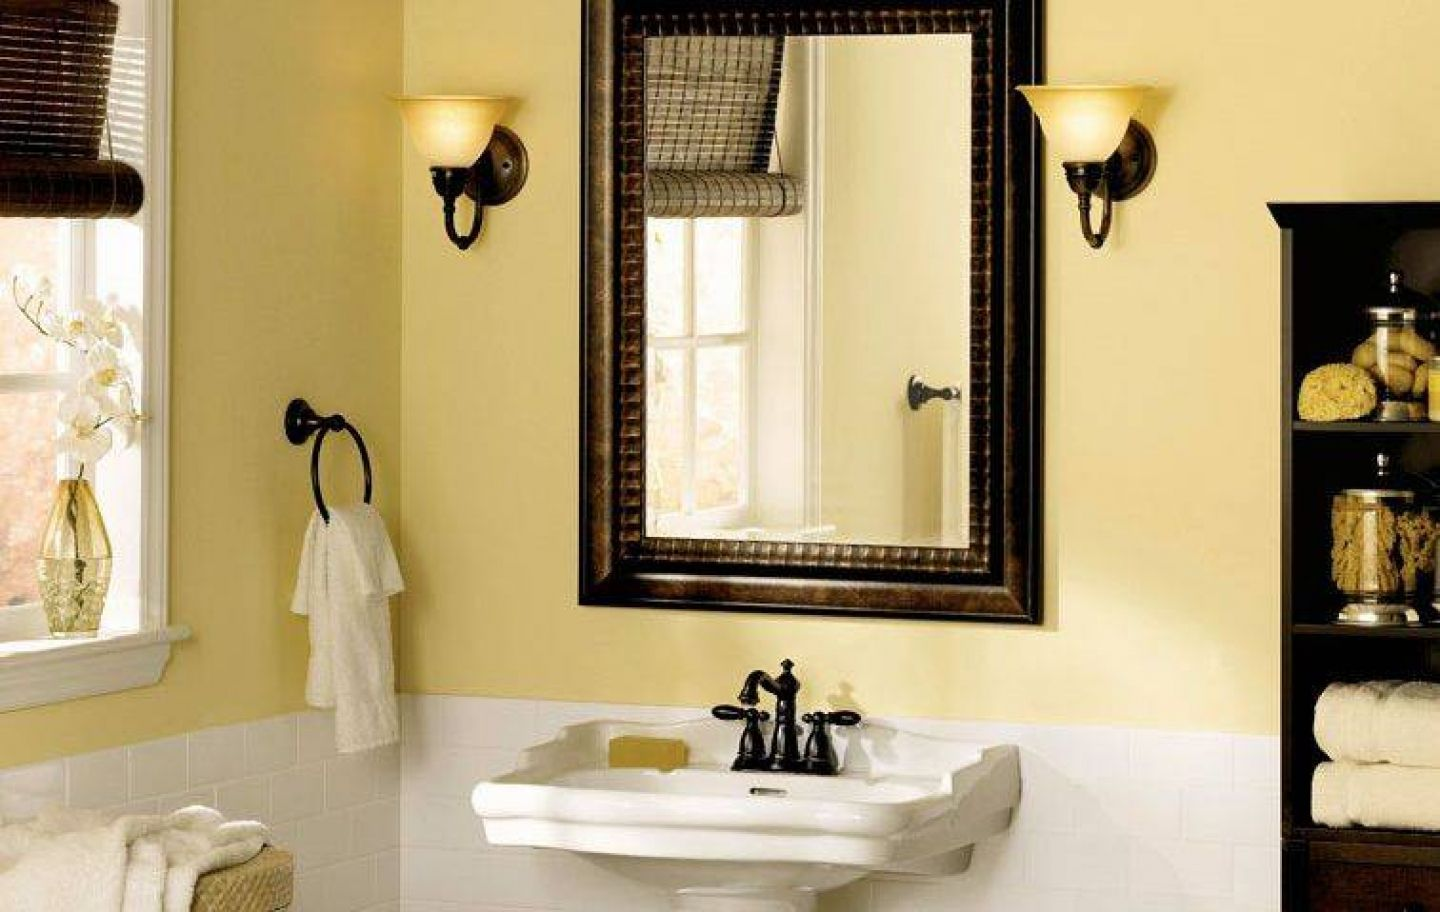 Elegant Decorate Traditional Room With Wooden Framed Bathroom Mirrors And White  Pedestal Sink Near Black Towel Shelves